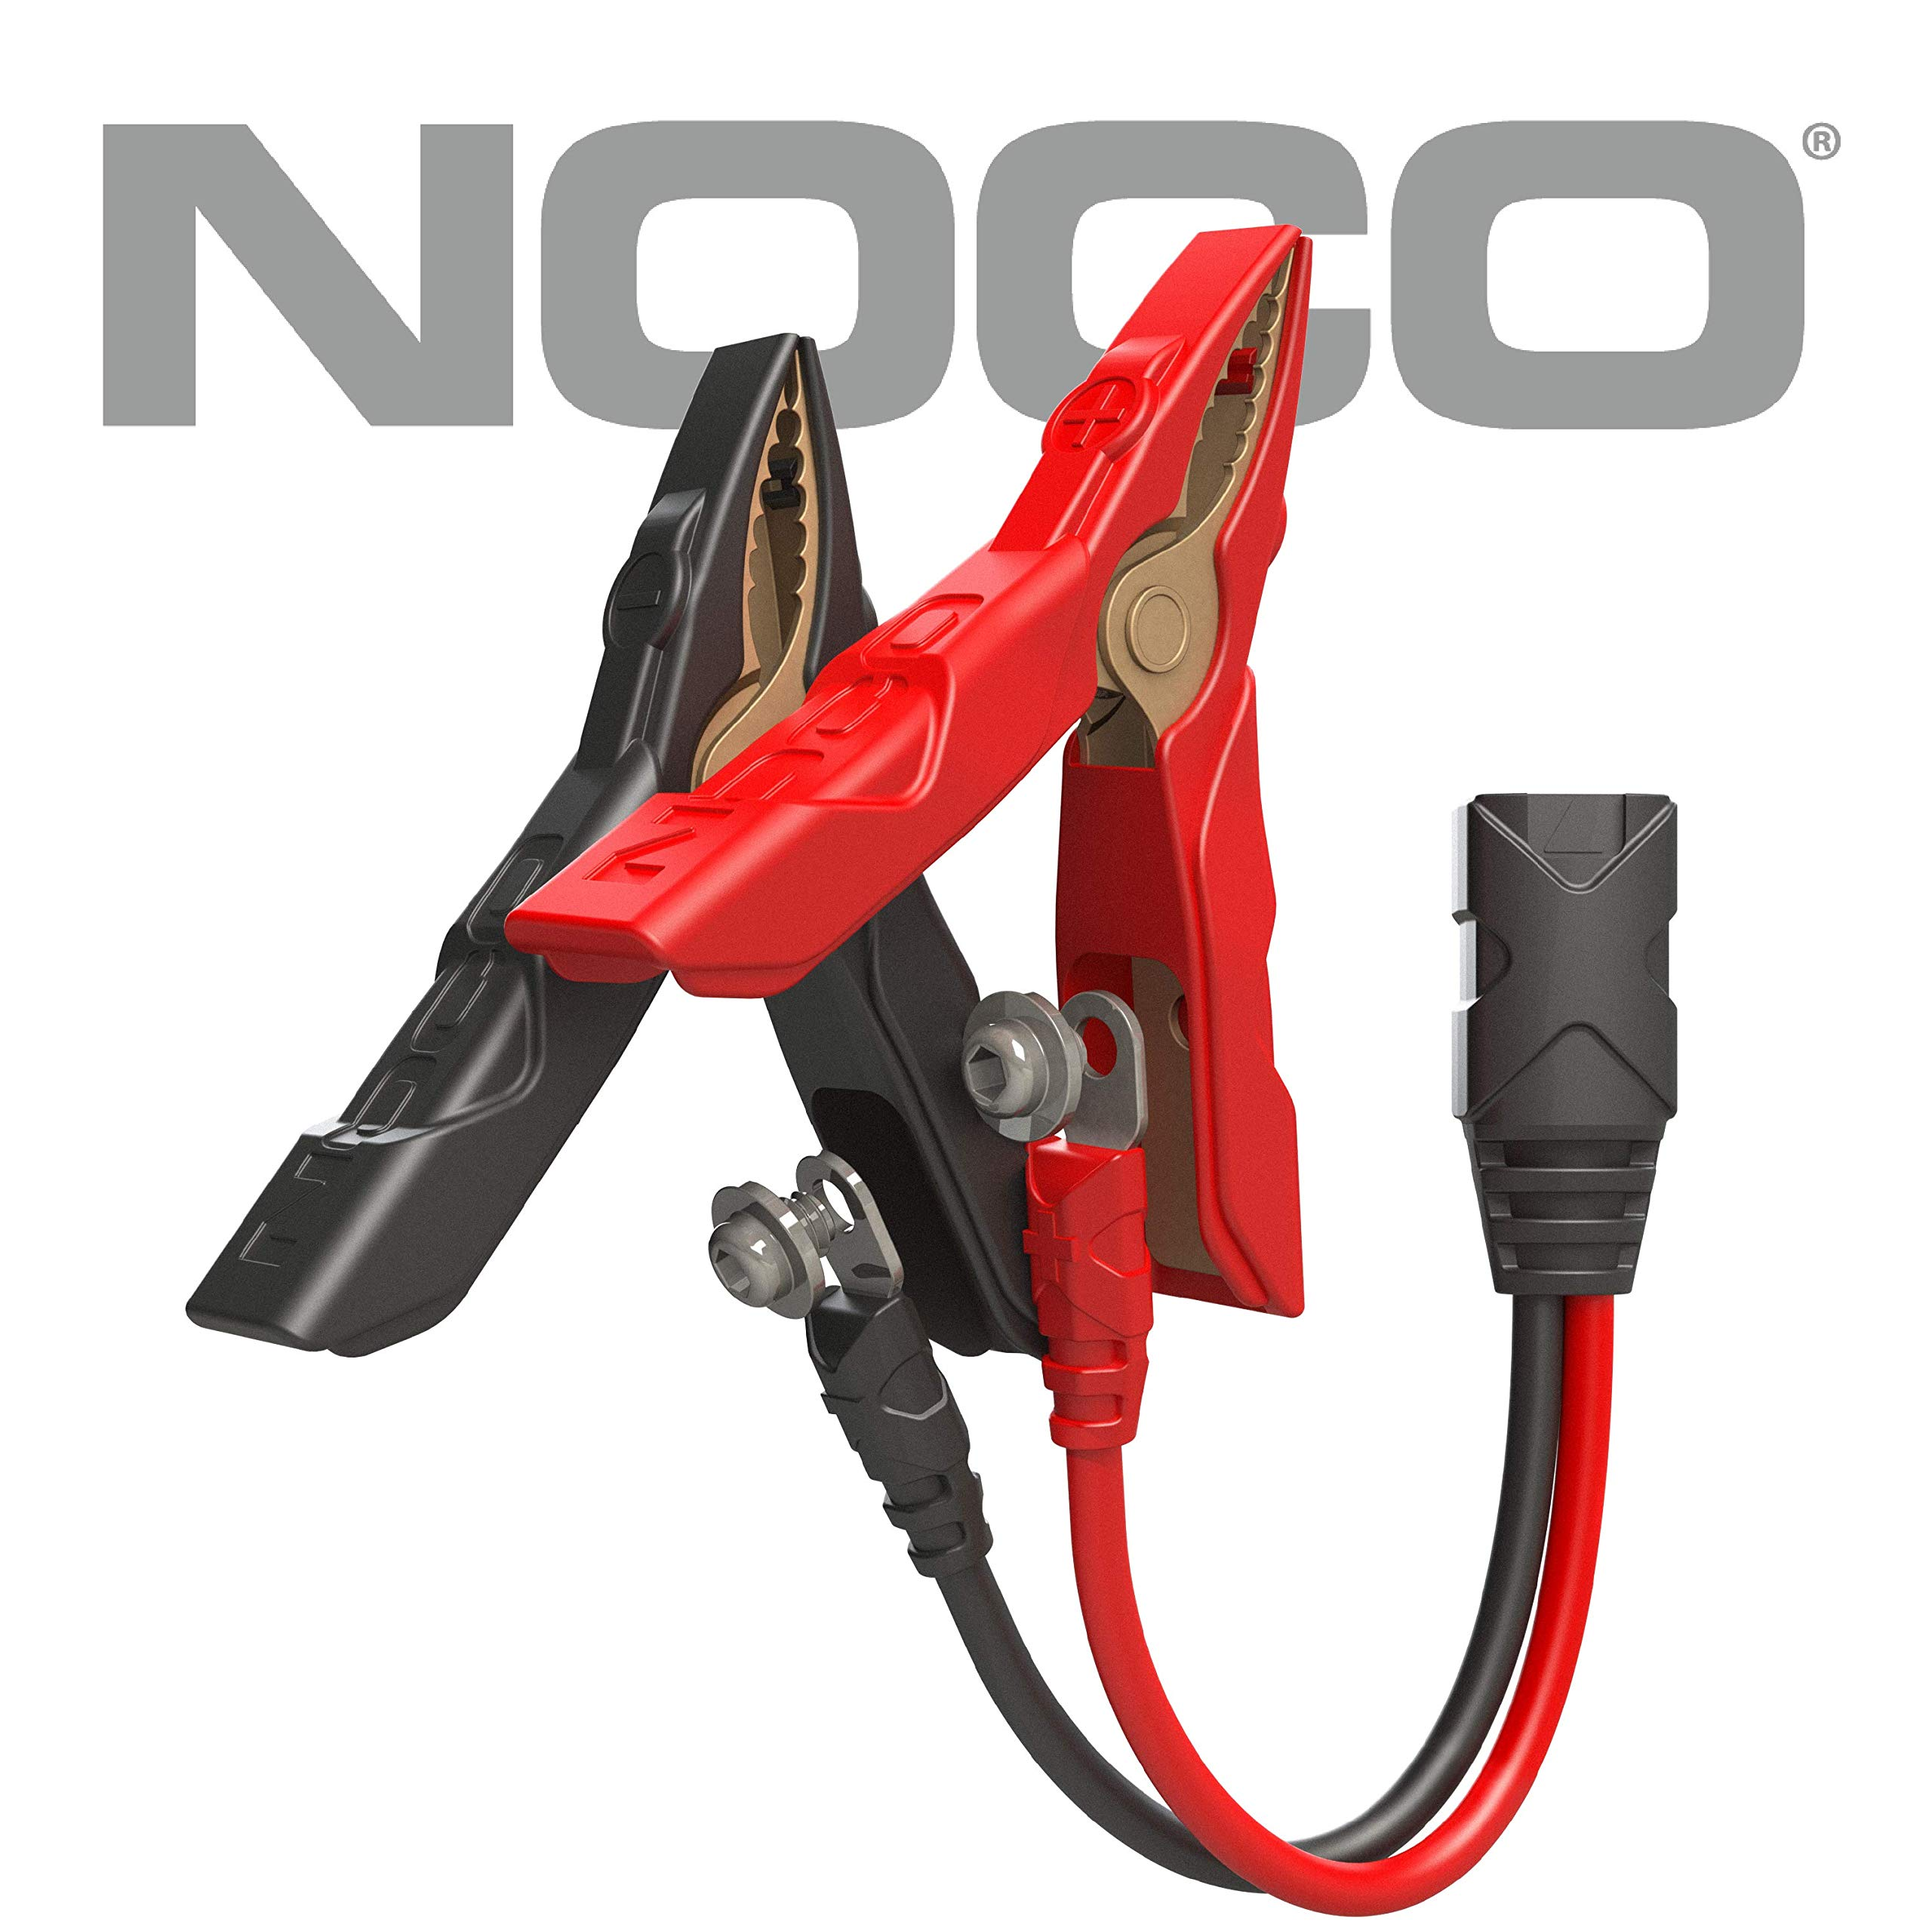 NOCO GBC002 Boost Replacement Sport Battery Clamp Accessory by NOCO